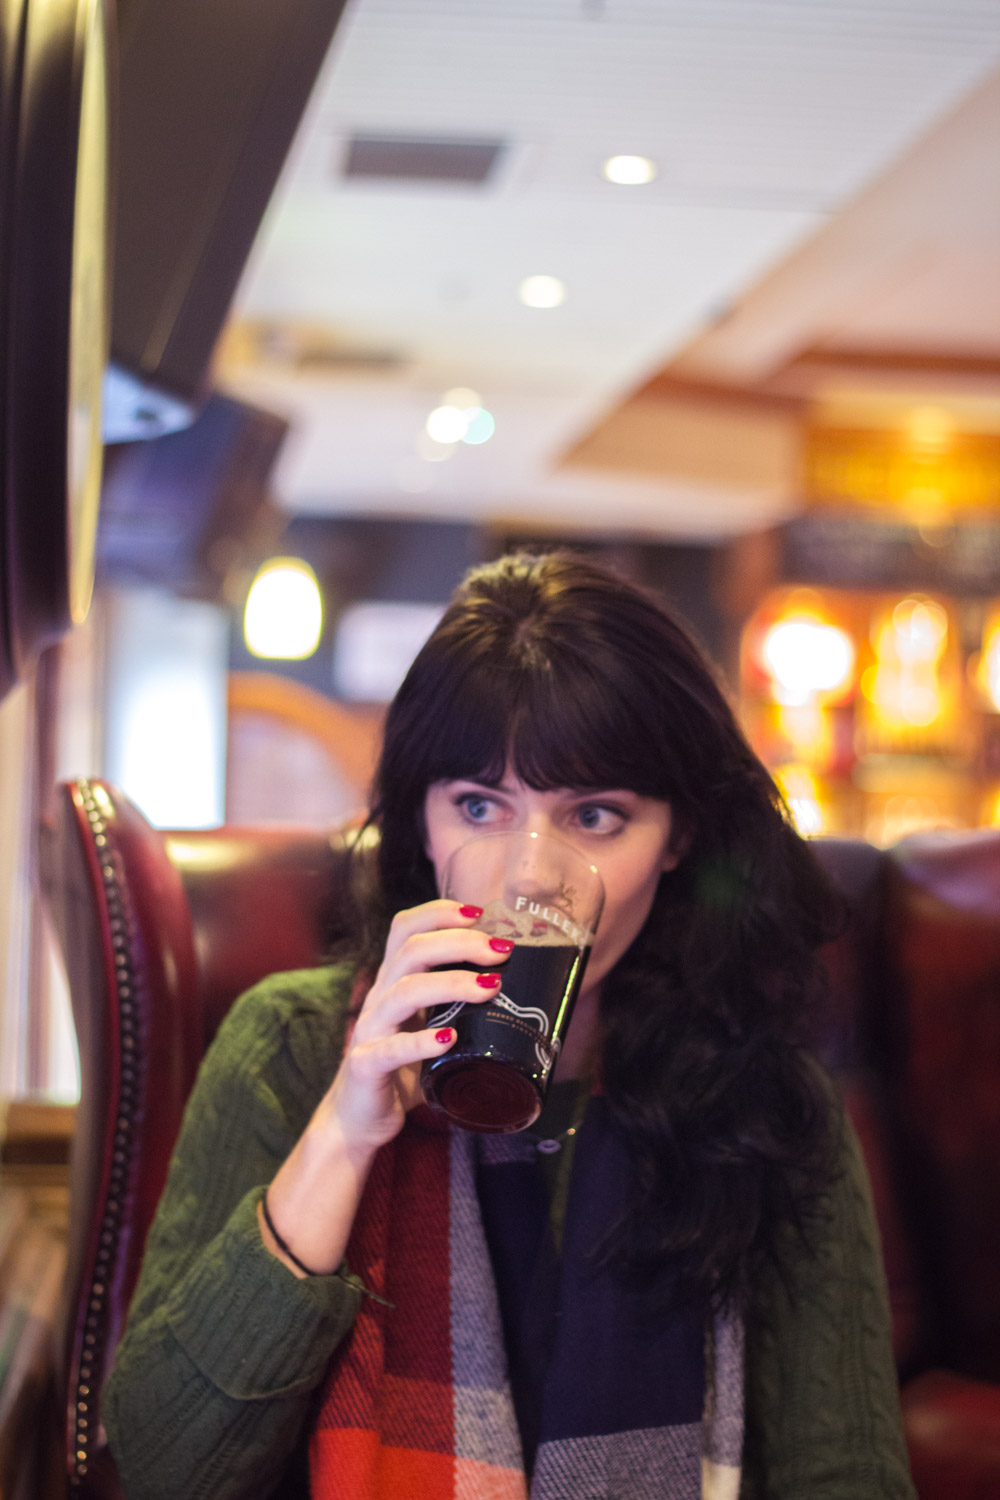 Enjoying a beer in a warm pub in London for Christmas